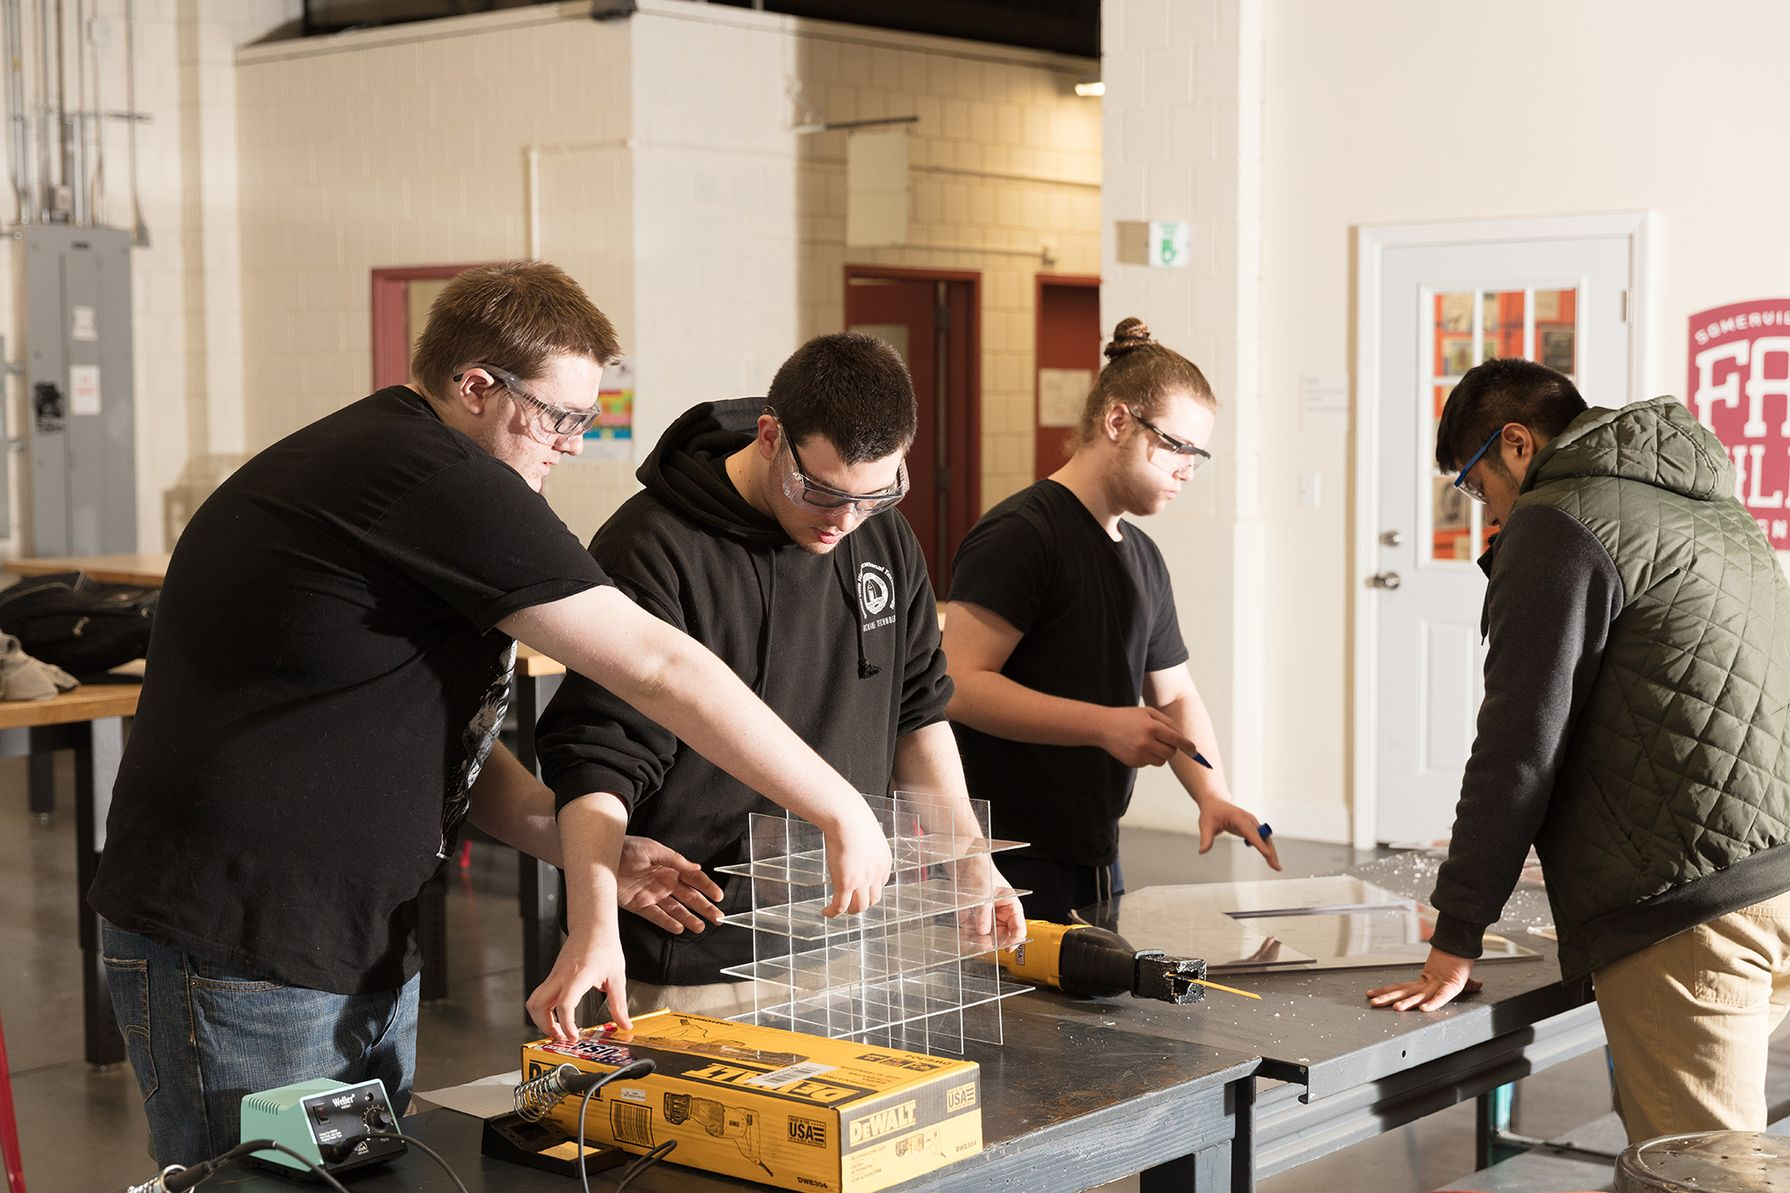 Somerville High School in Massachusetts trains vocational students to use modern technology and processes in their fabrication lab.